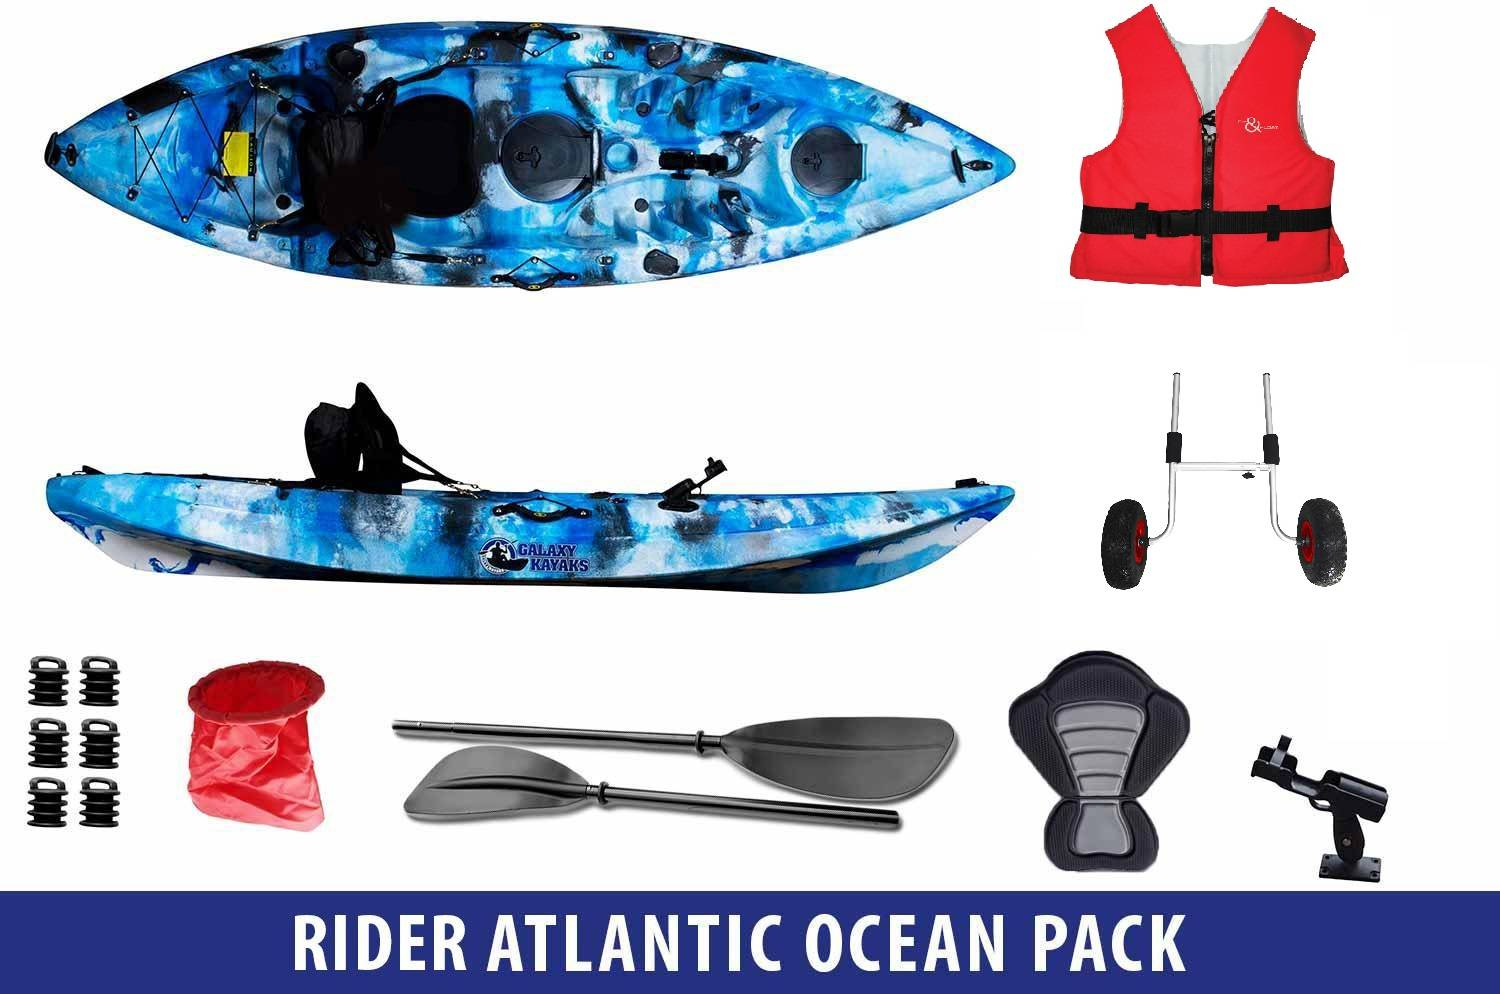 Rider Atlantic Ocean Pack